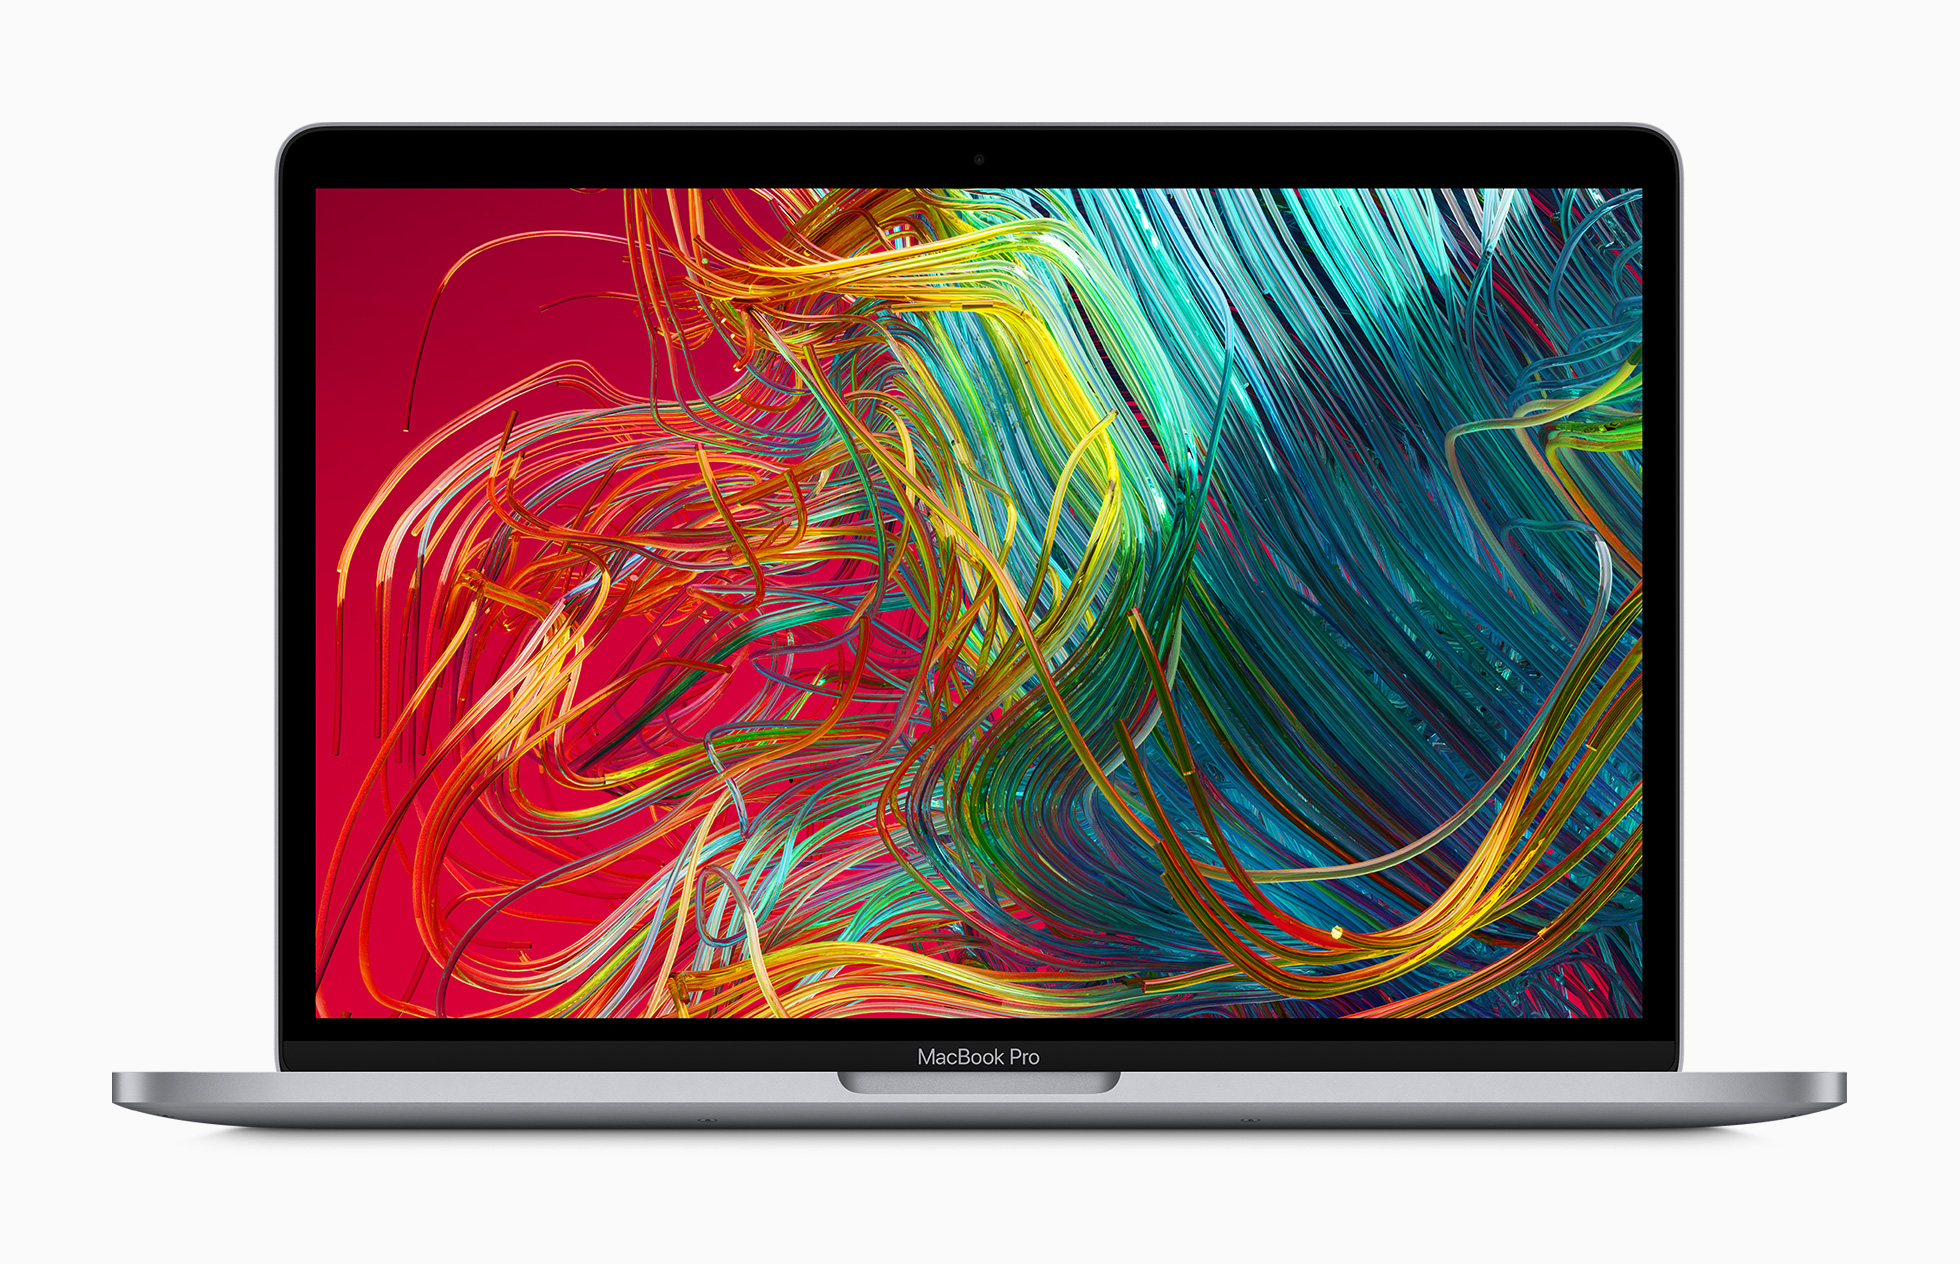 Apple_macbook_pro-13-inch-with-retina-display_screen_05042020_big.jpg.large_2x.jpg (1960×1264)